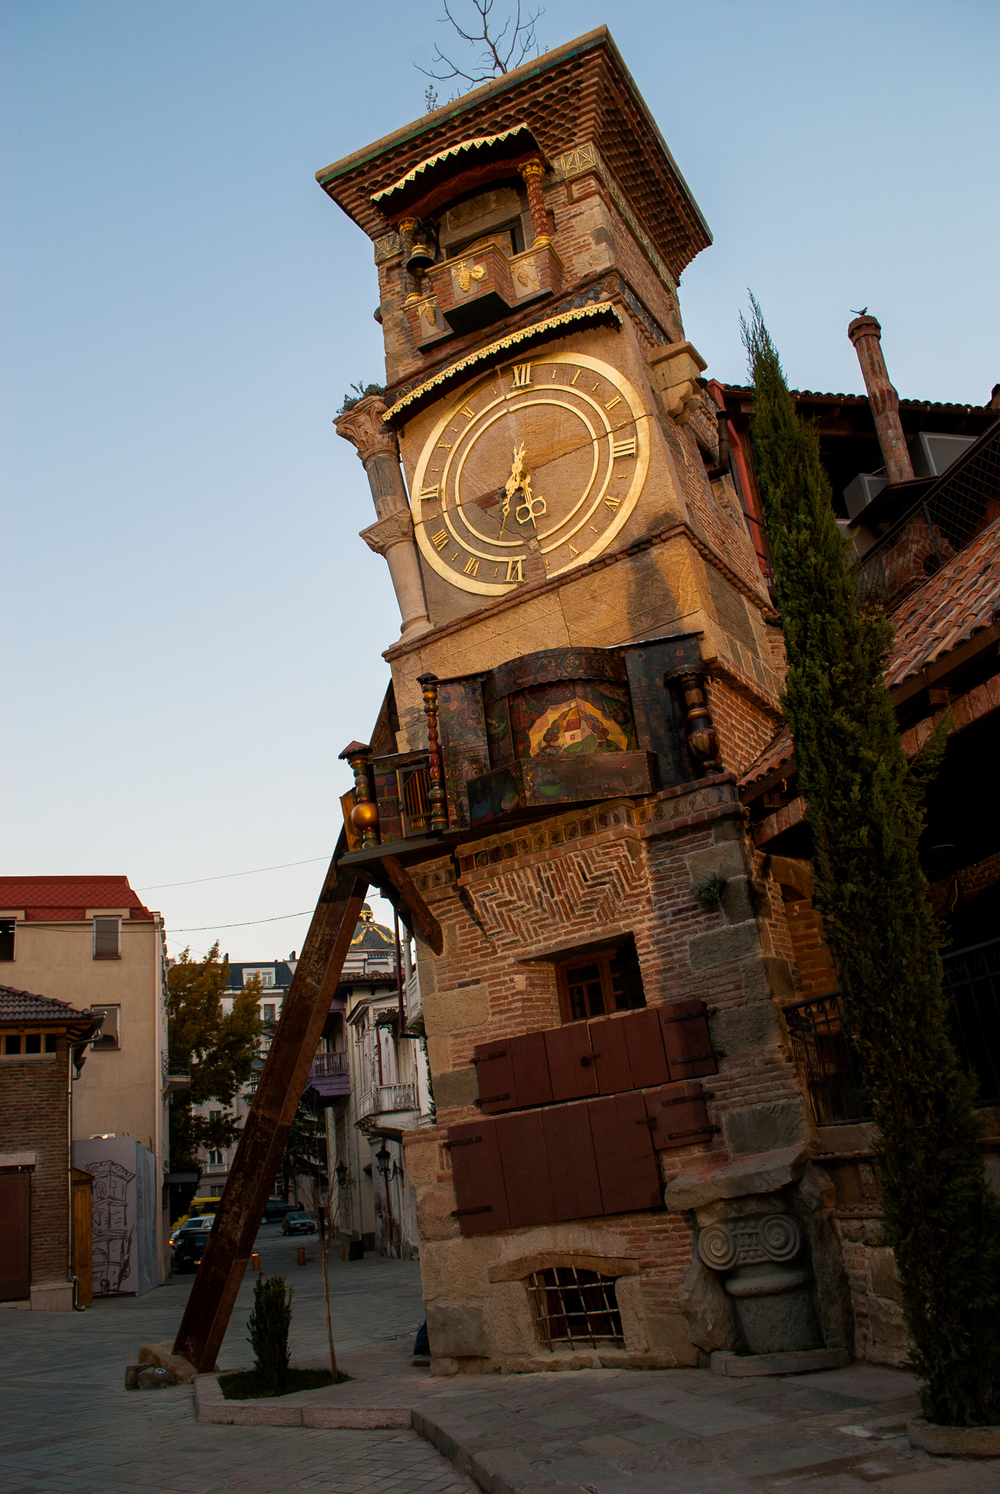 Rezo Gabriadze's pet project: a three story clock tower that is perpetually falling down, in Tbilisi. Made by a world famous puppeteer who cobbled it together himself in the street over three years, brick by brick. Read  my story  on this...